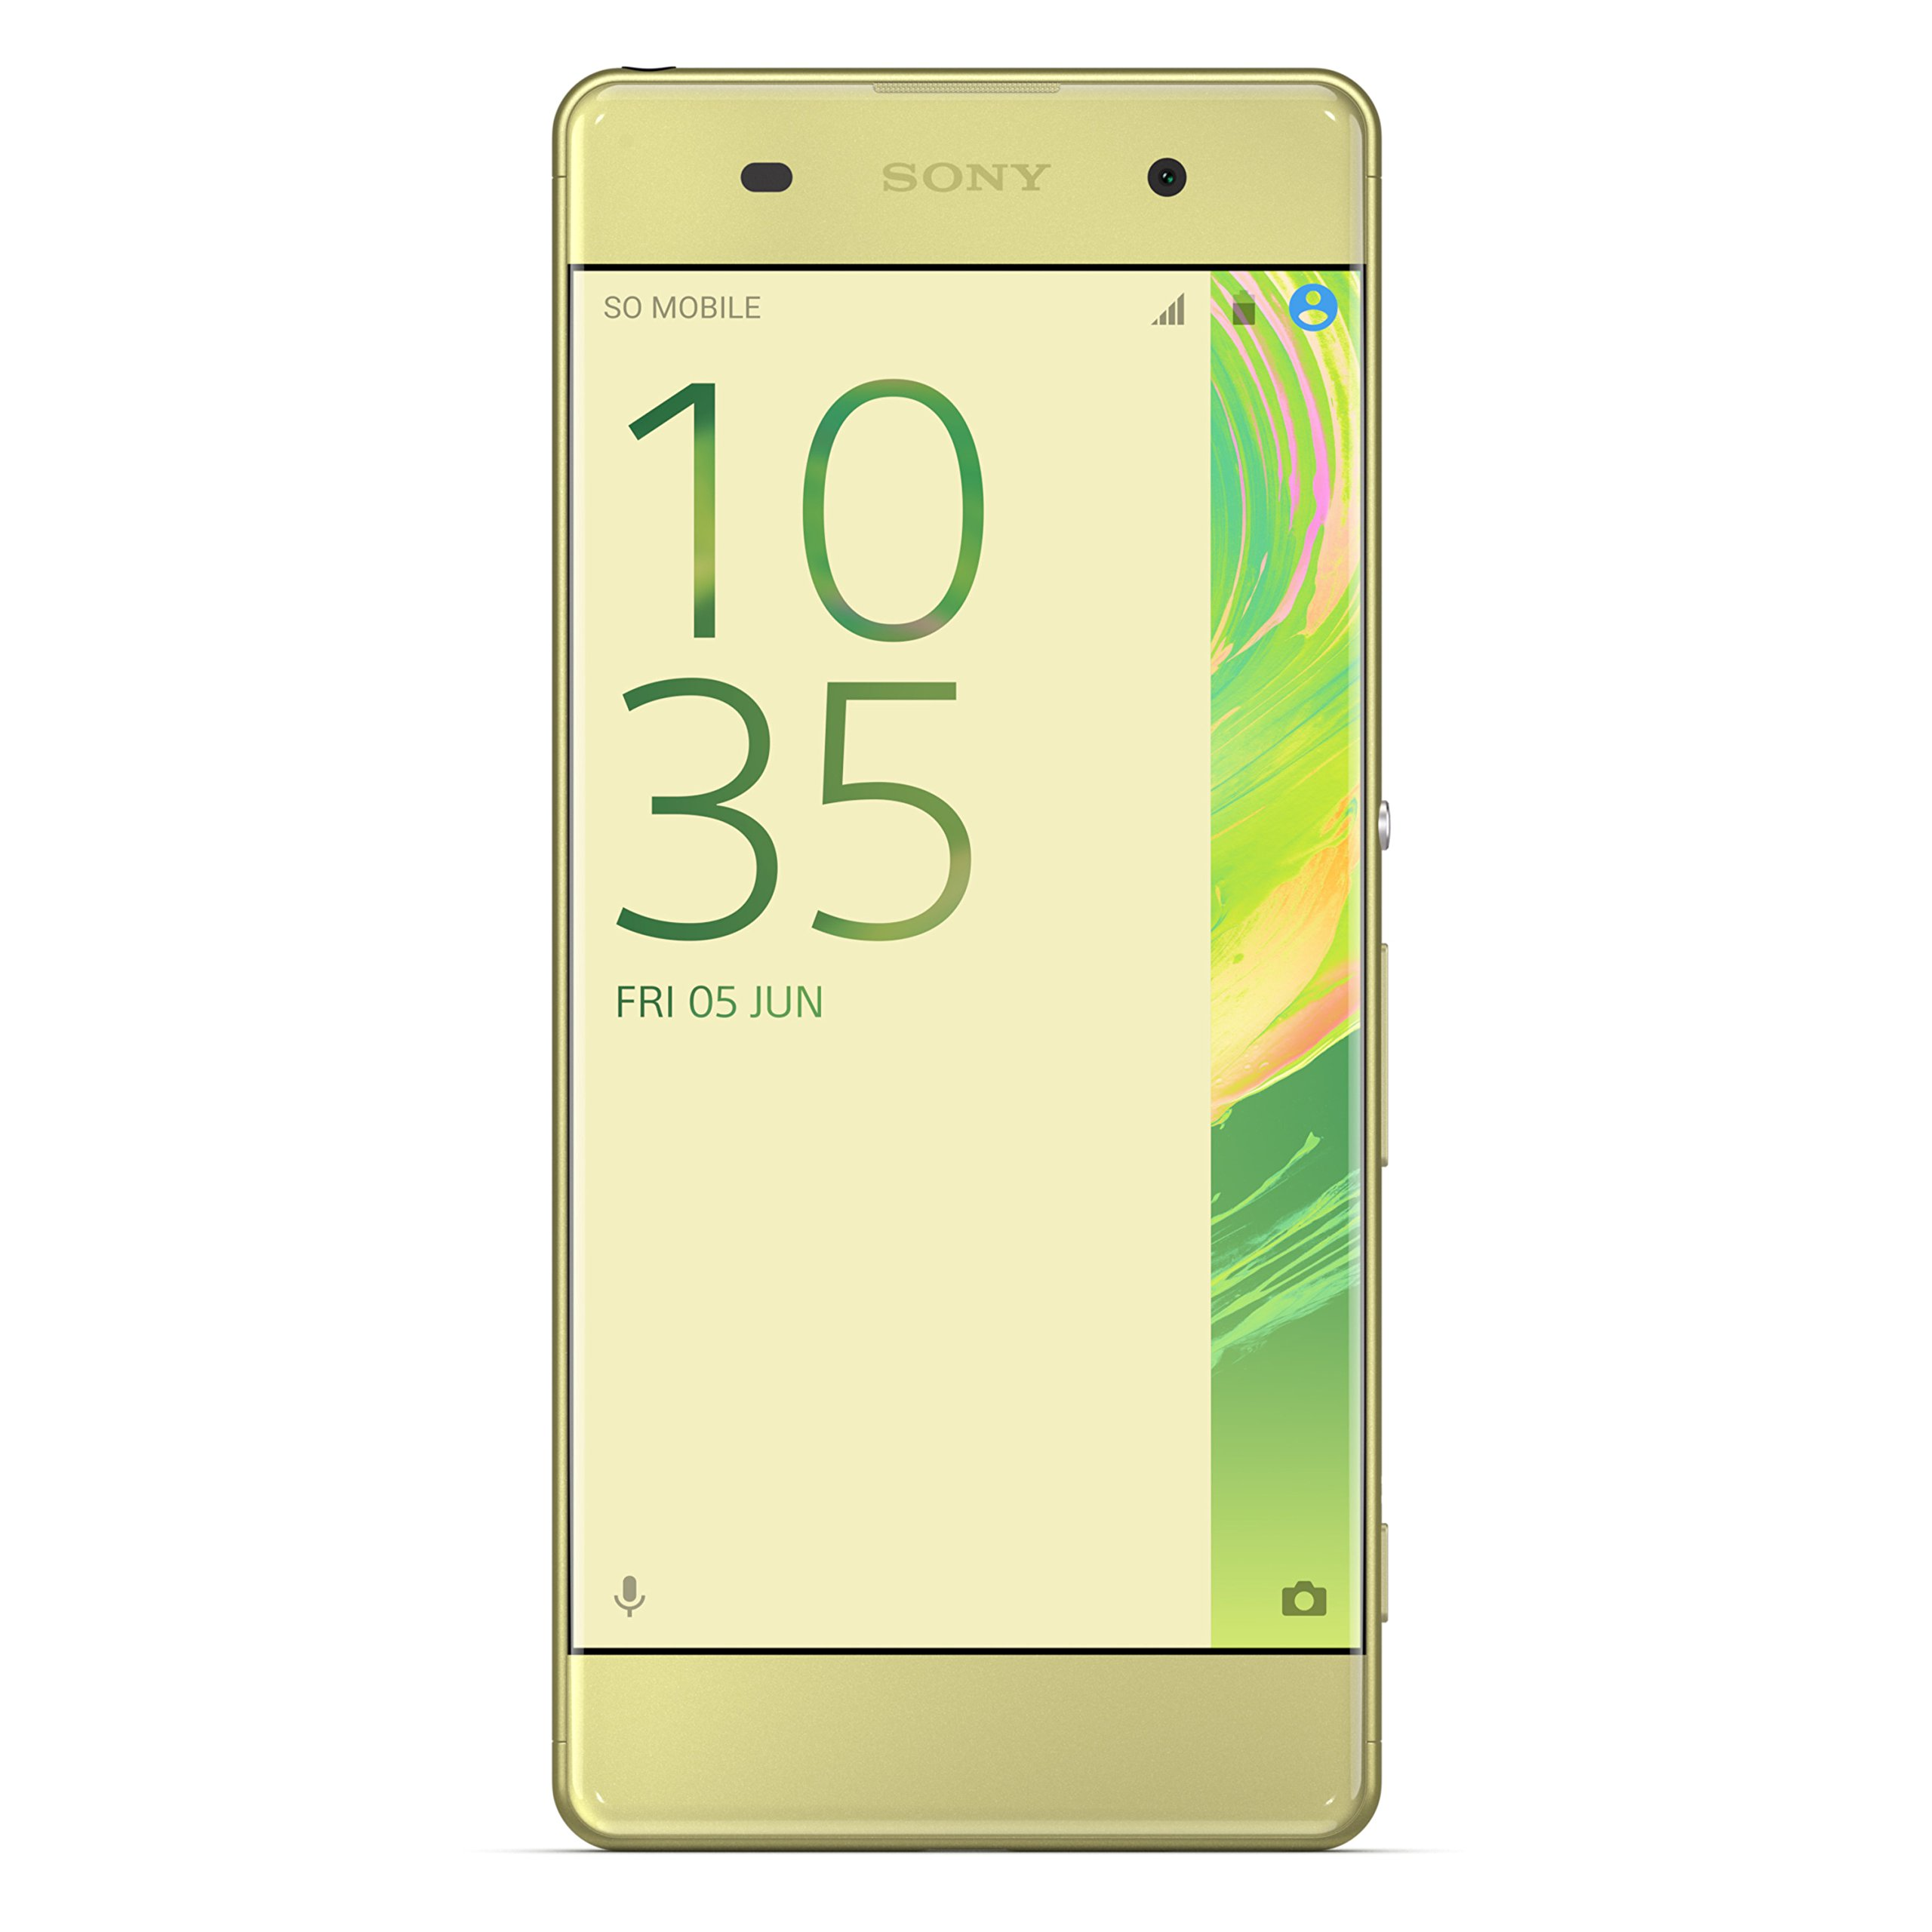 Sony Xperia XA Ultra F3213 16GB GSM 21MP Camera Phone - Lime Gold by Sony